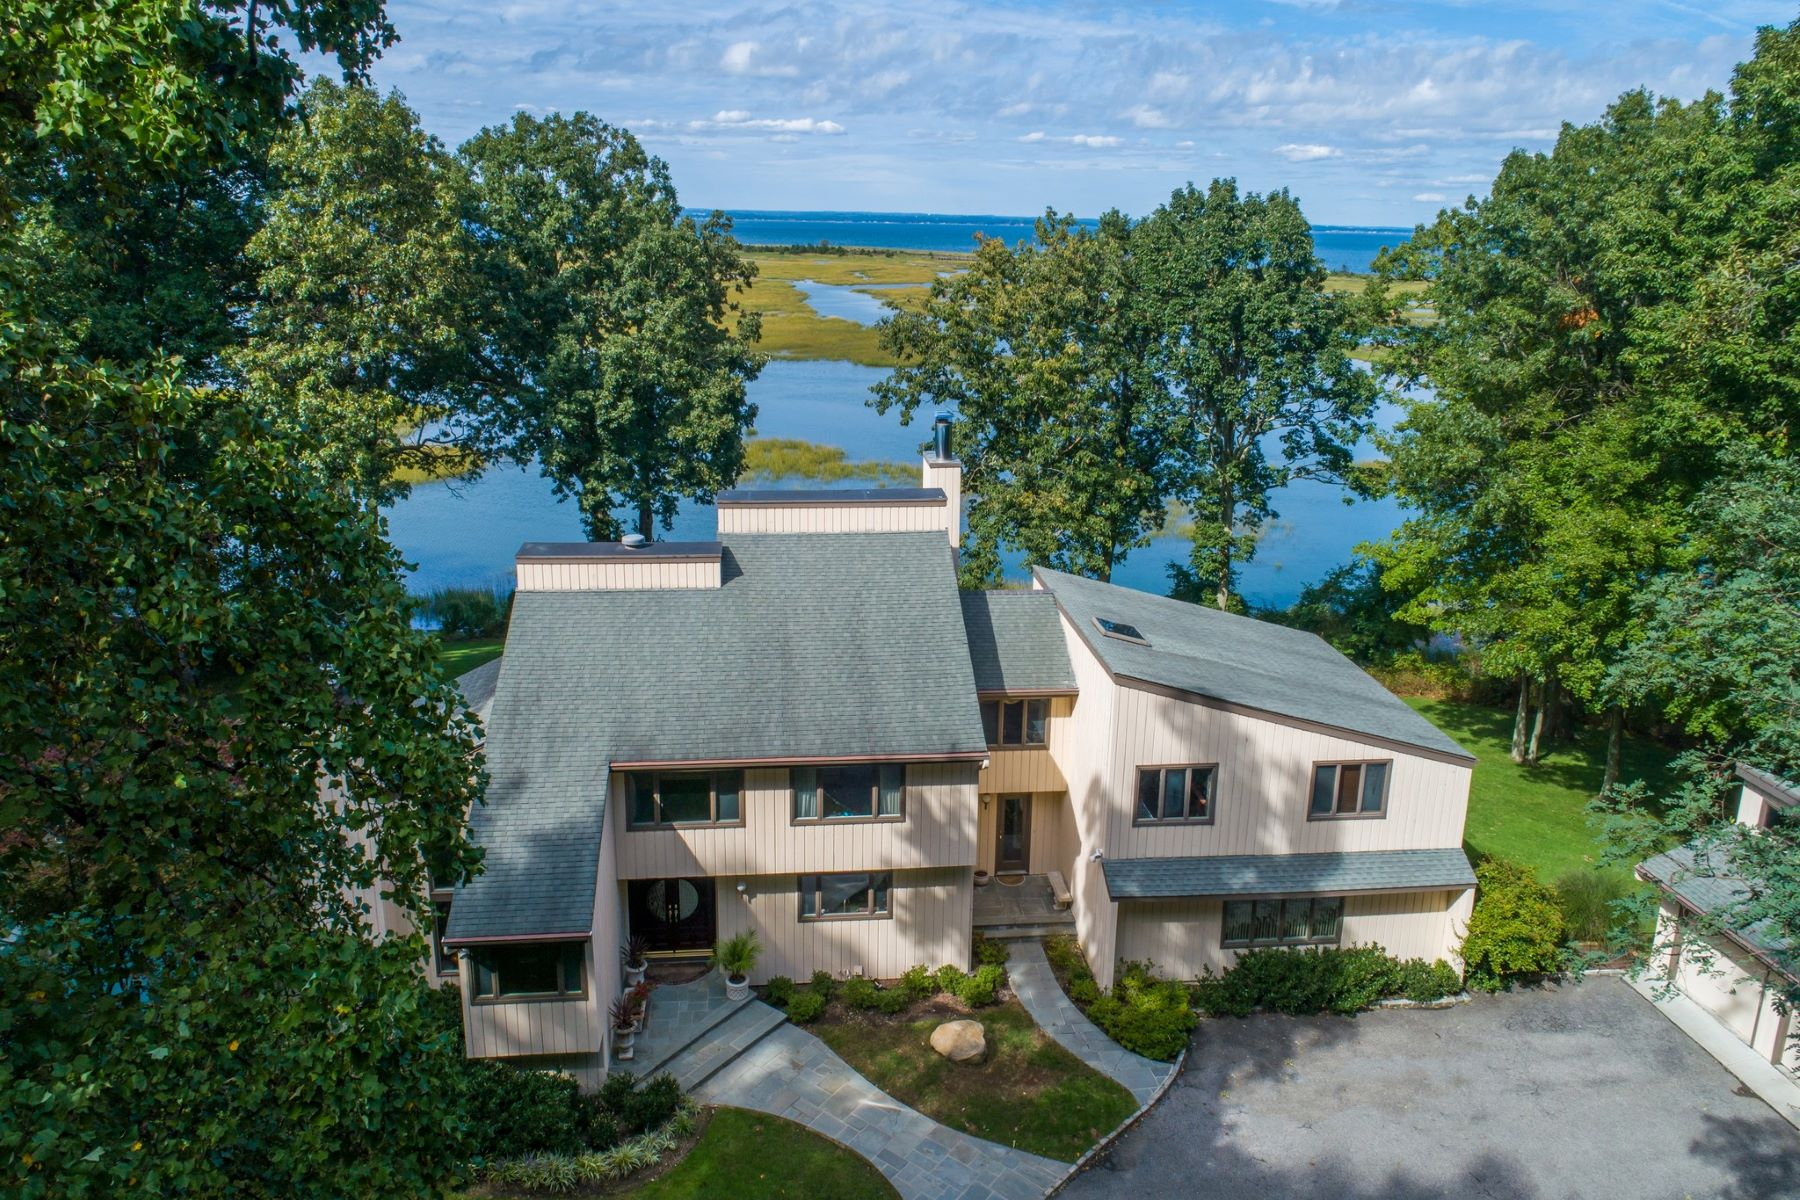 Single Family Homes for Sale at Lloyd Neck 28 Lloyd Point Dr Lloyd Neck, New York 11743 United States